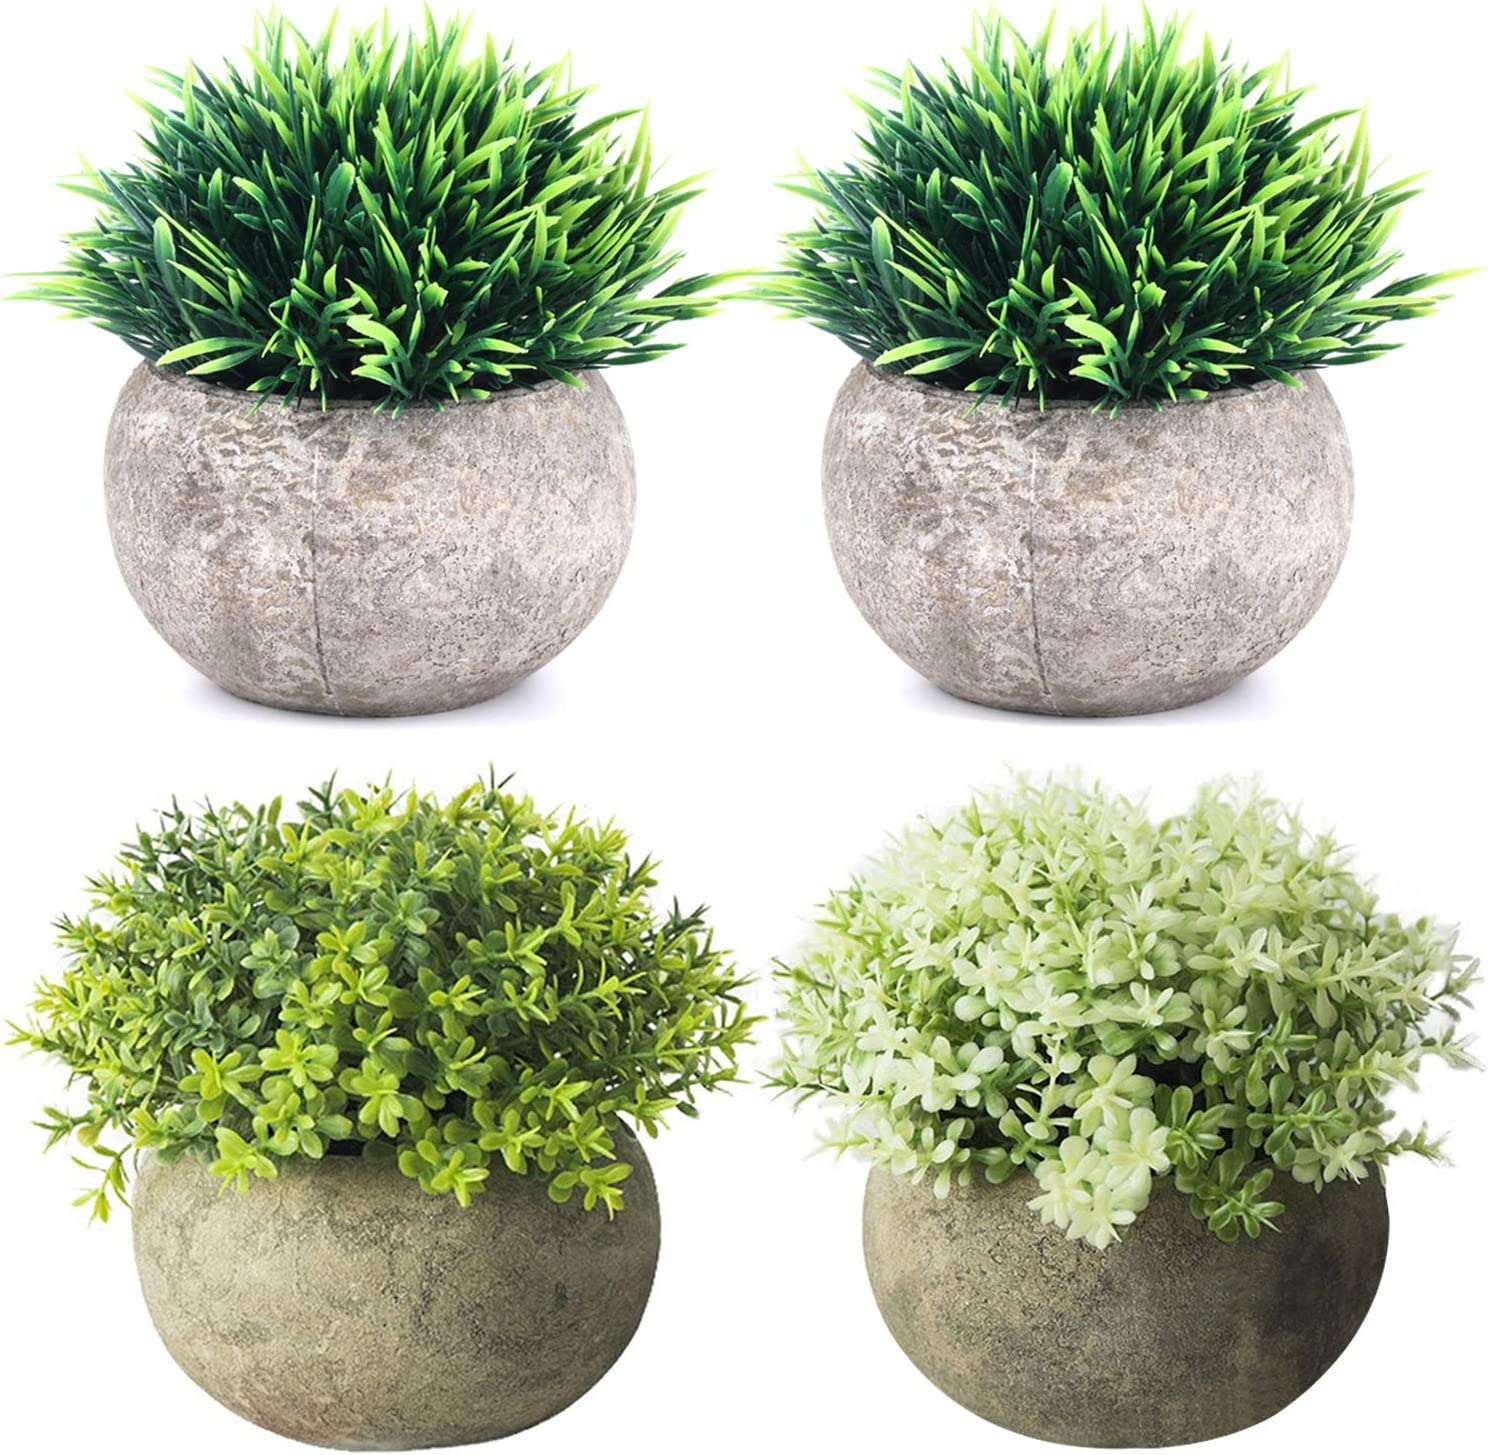 THE BLOOM TIMES 4 Packs Mini Potted Fake Plants for Bathroom/Home Office Decor, Small Artificial Plants in Pots Faux Greenery for House Decorations